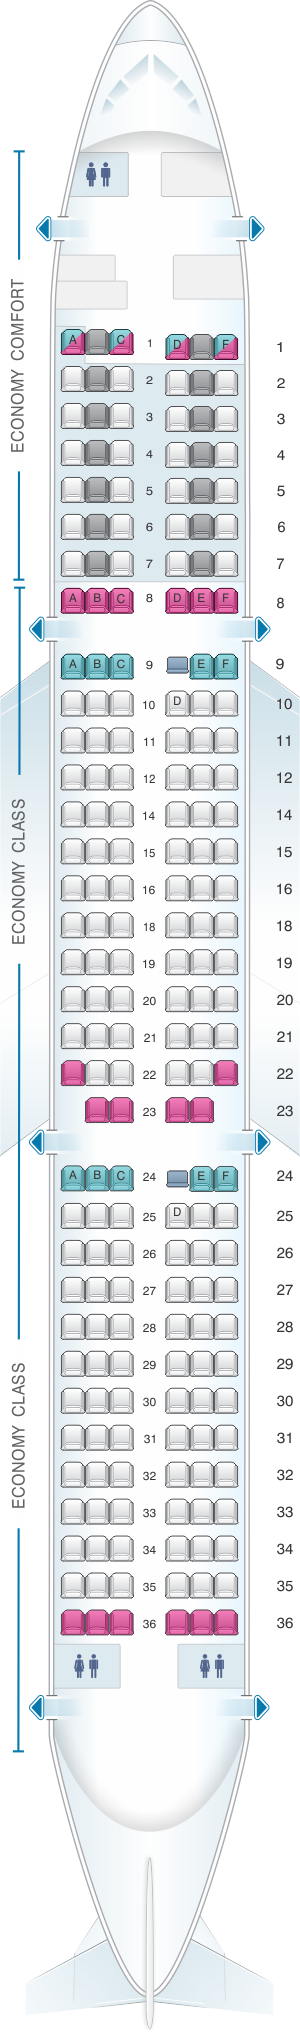 Seat map for Alitalia Airlines - Air One Airbus A321